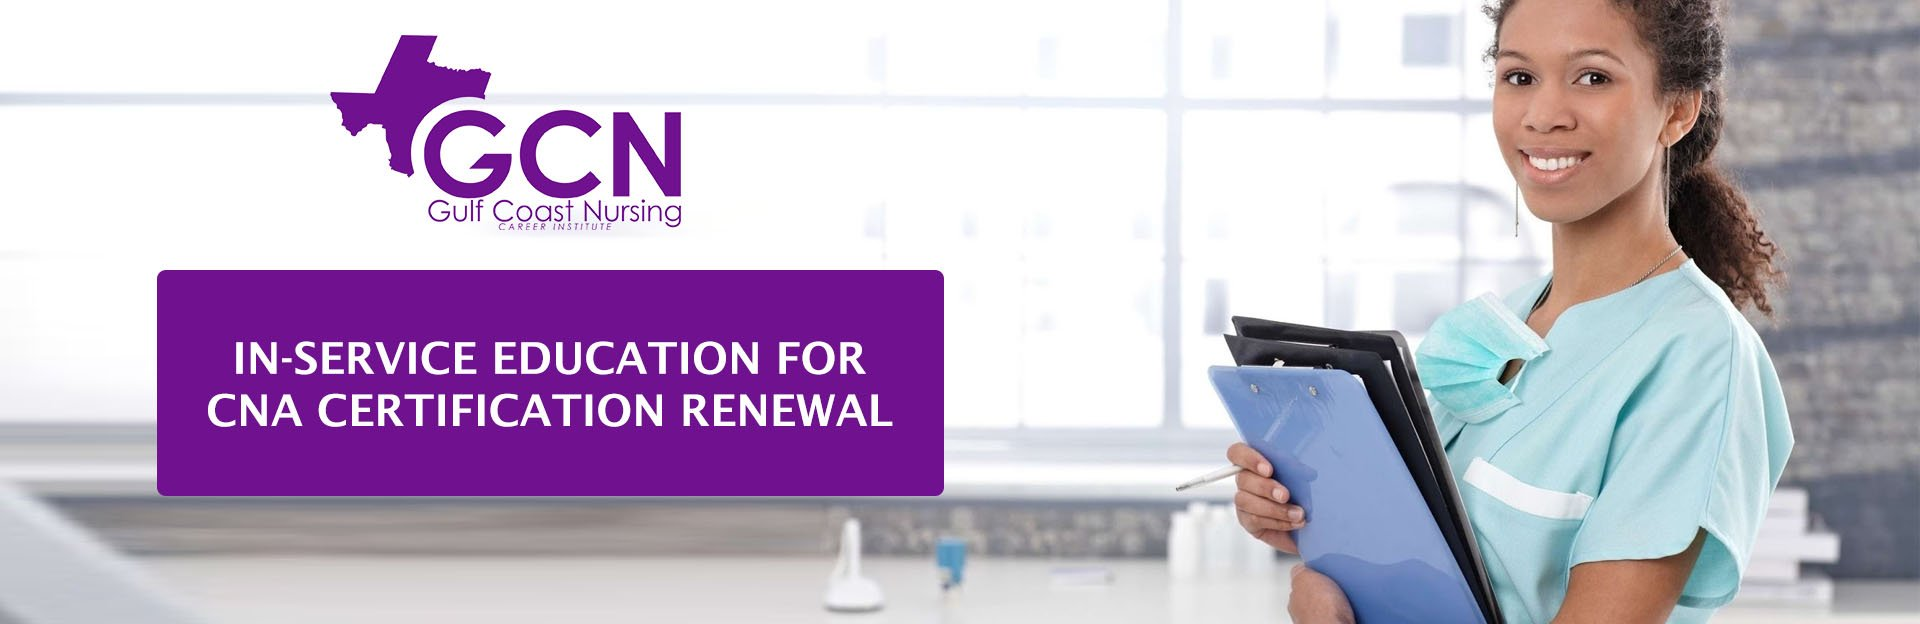 In-service Education for CNA Certification Renewal